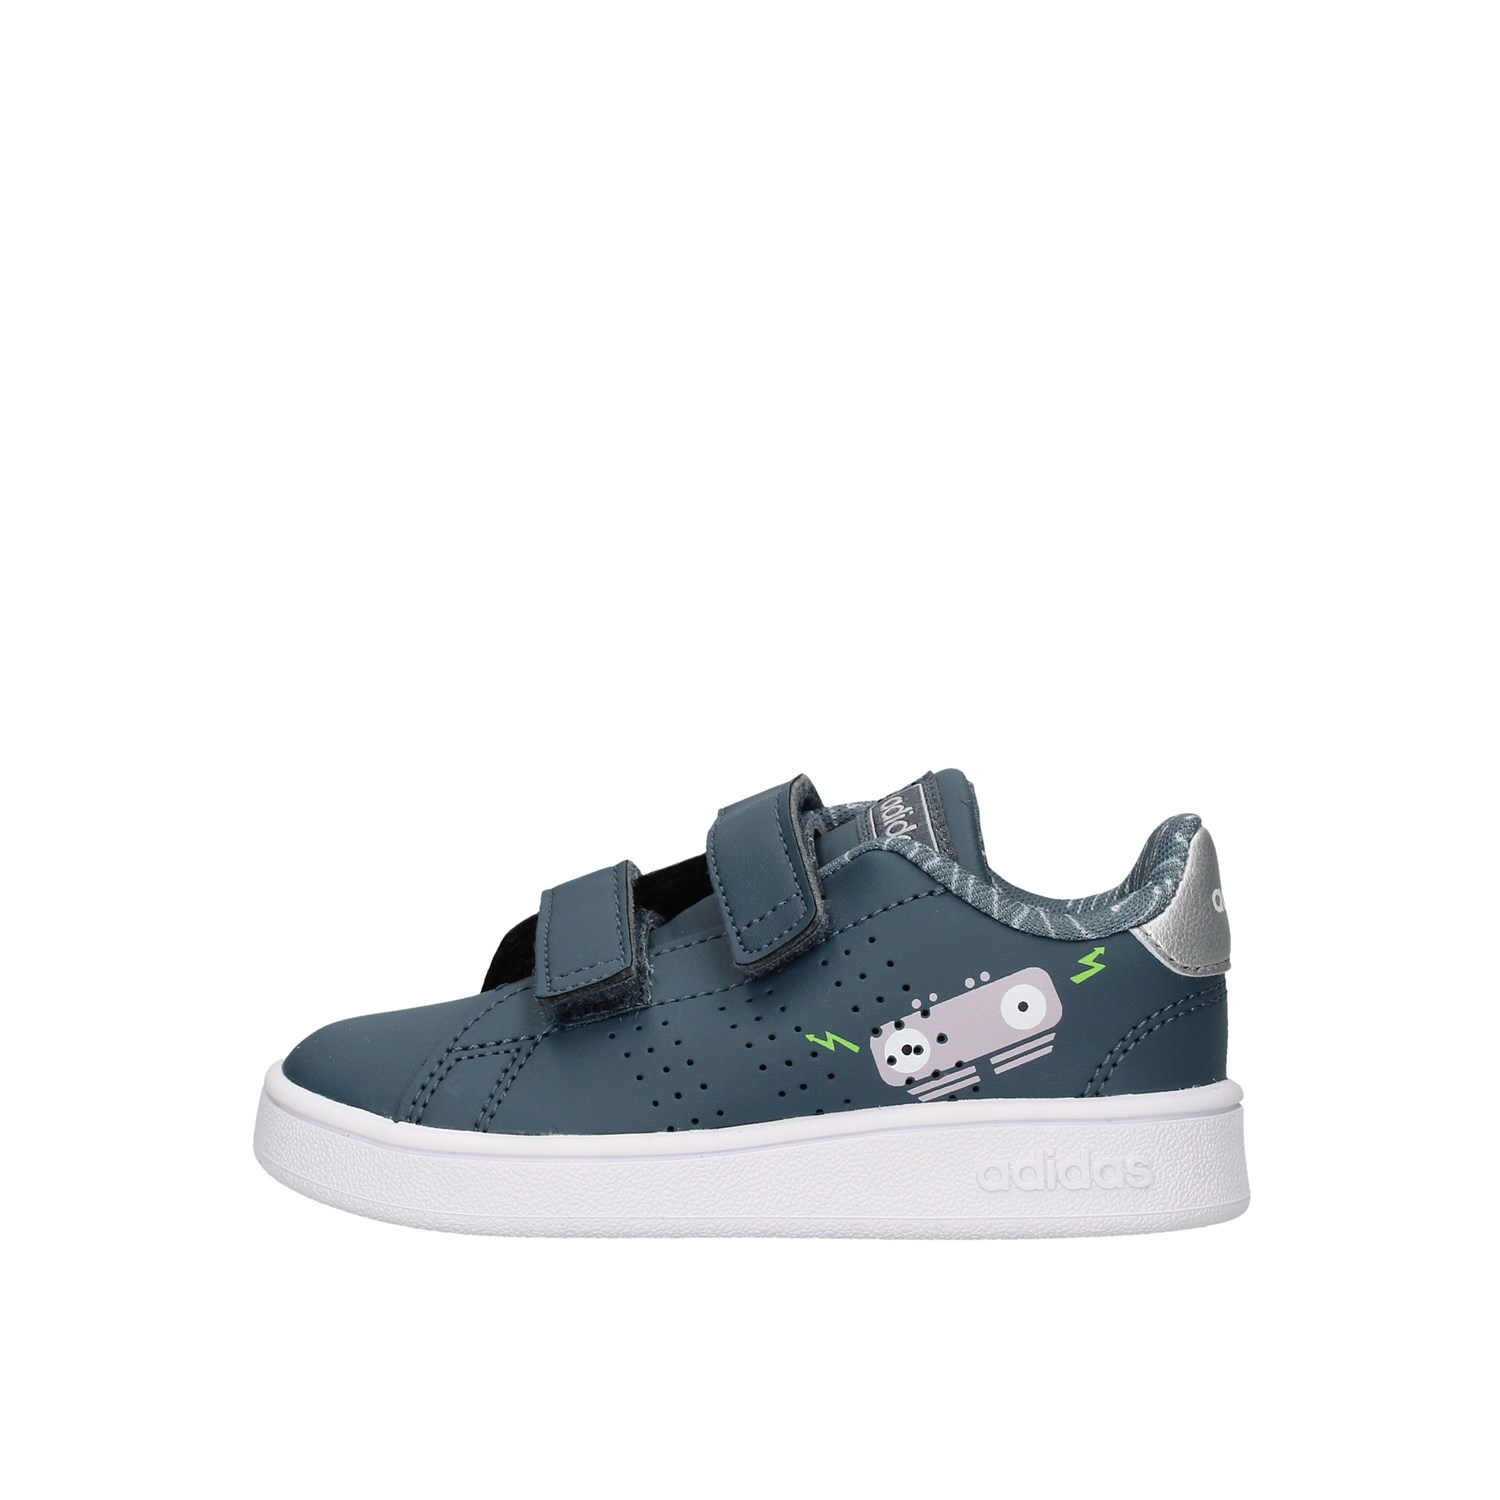 Adidas Shoes Child low BLUE FW4953